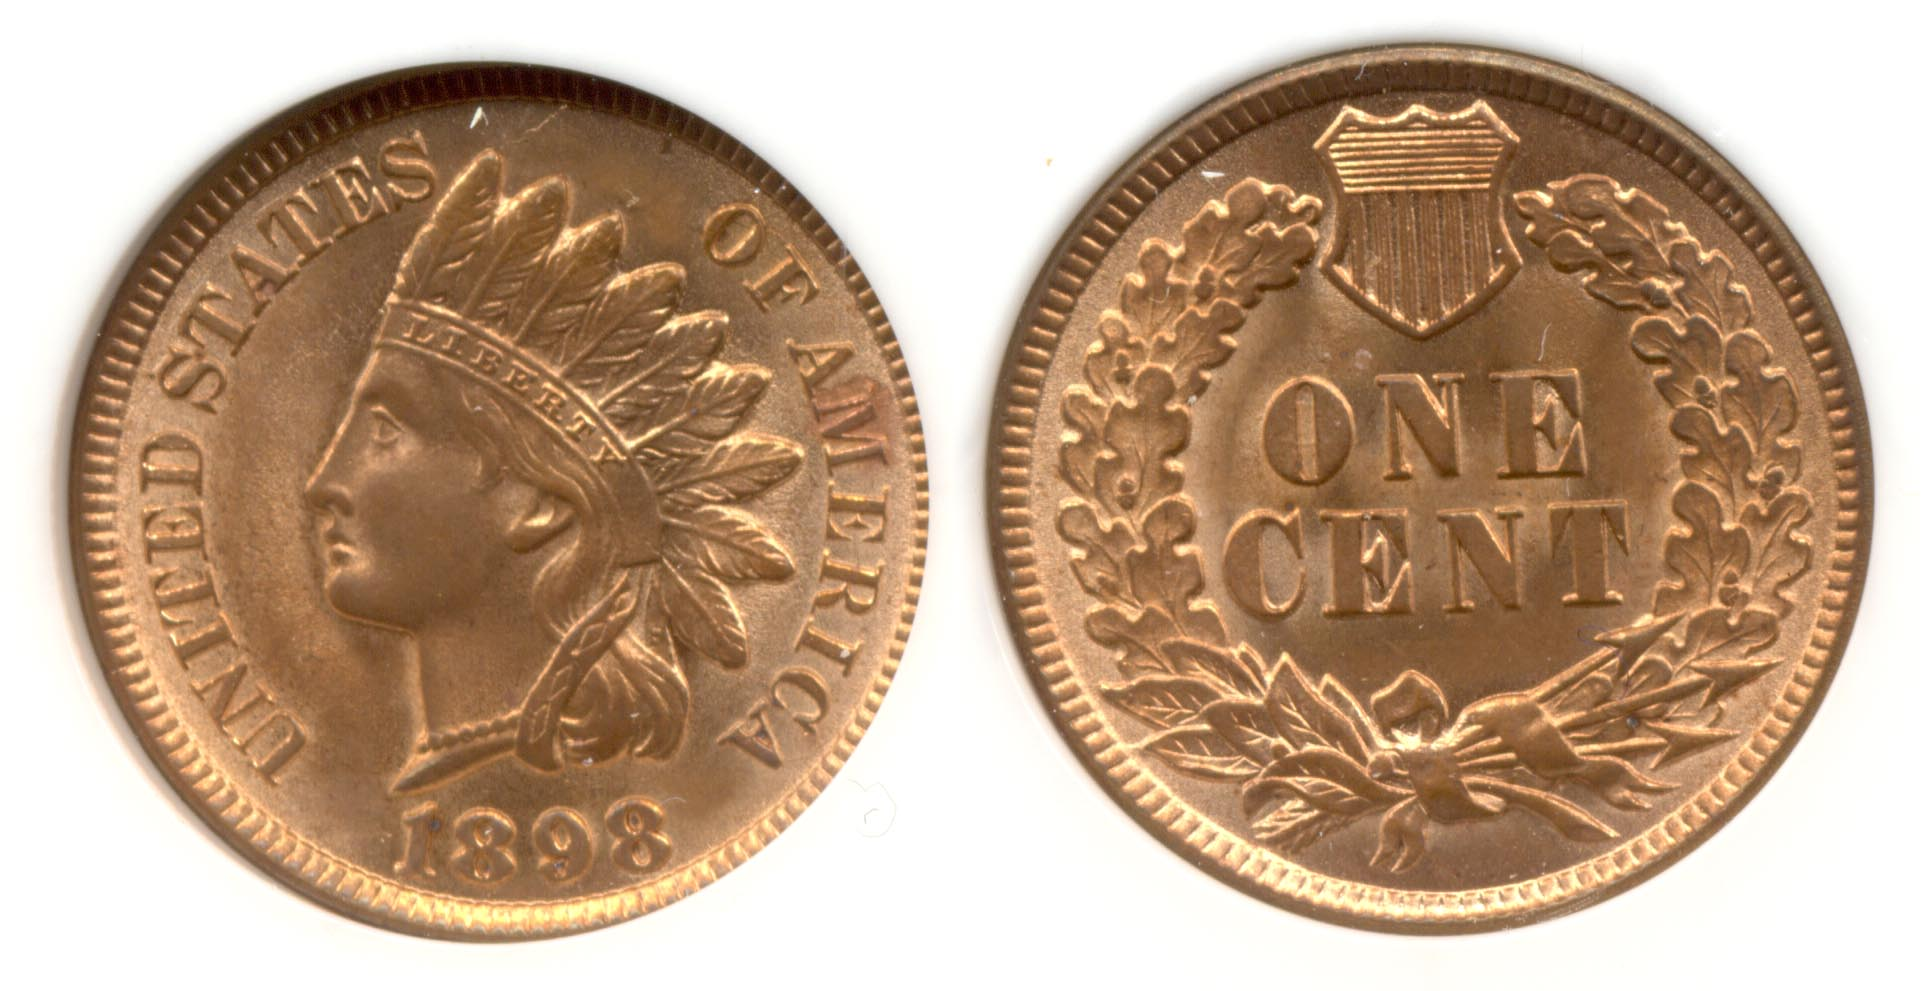 1898 Indian Head Cent PCI MS-64 Red